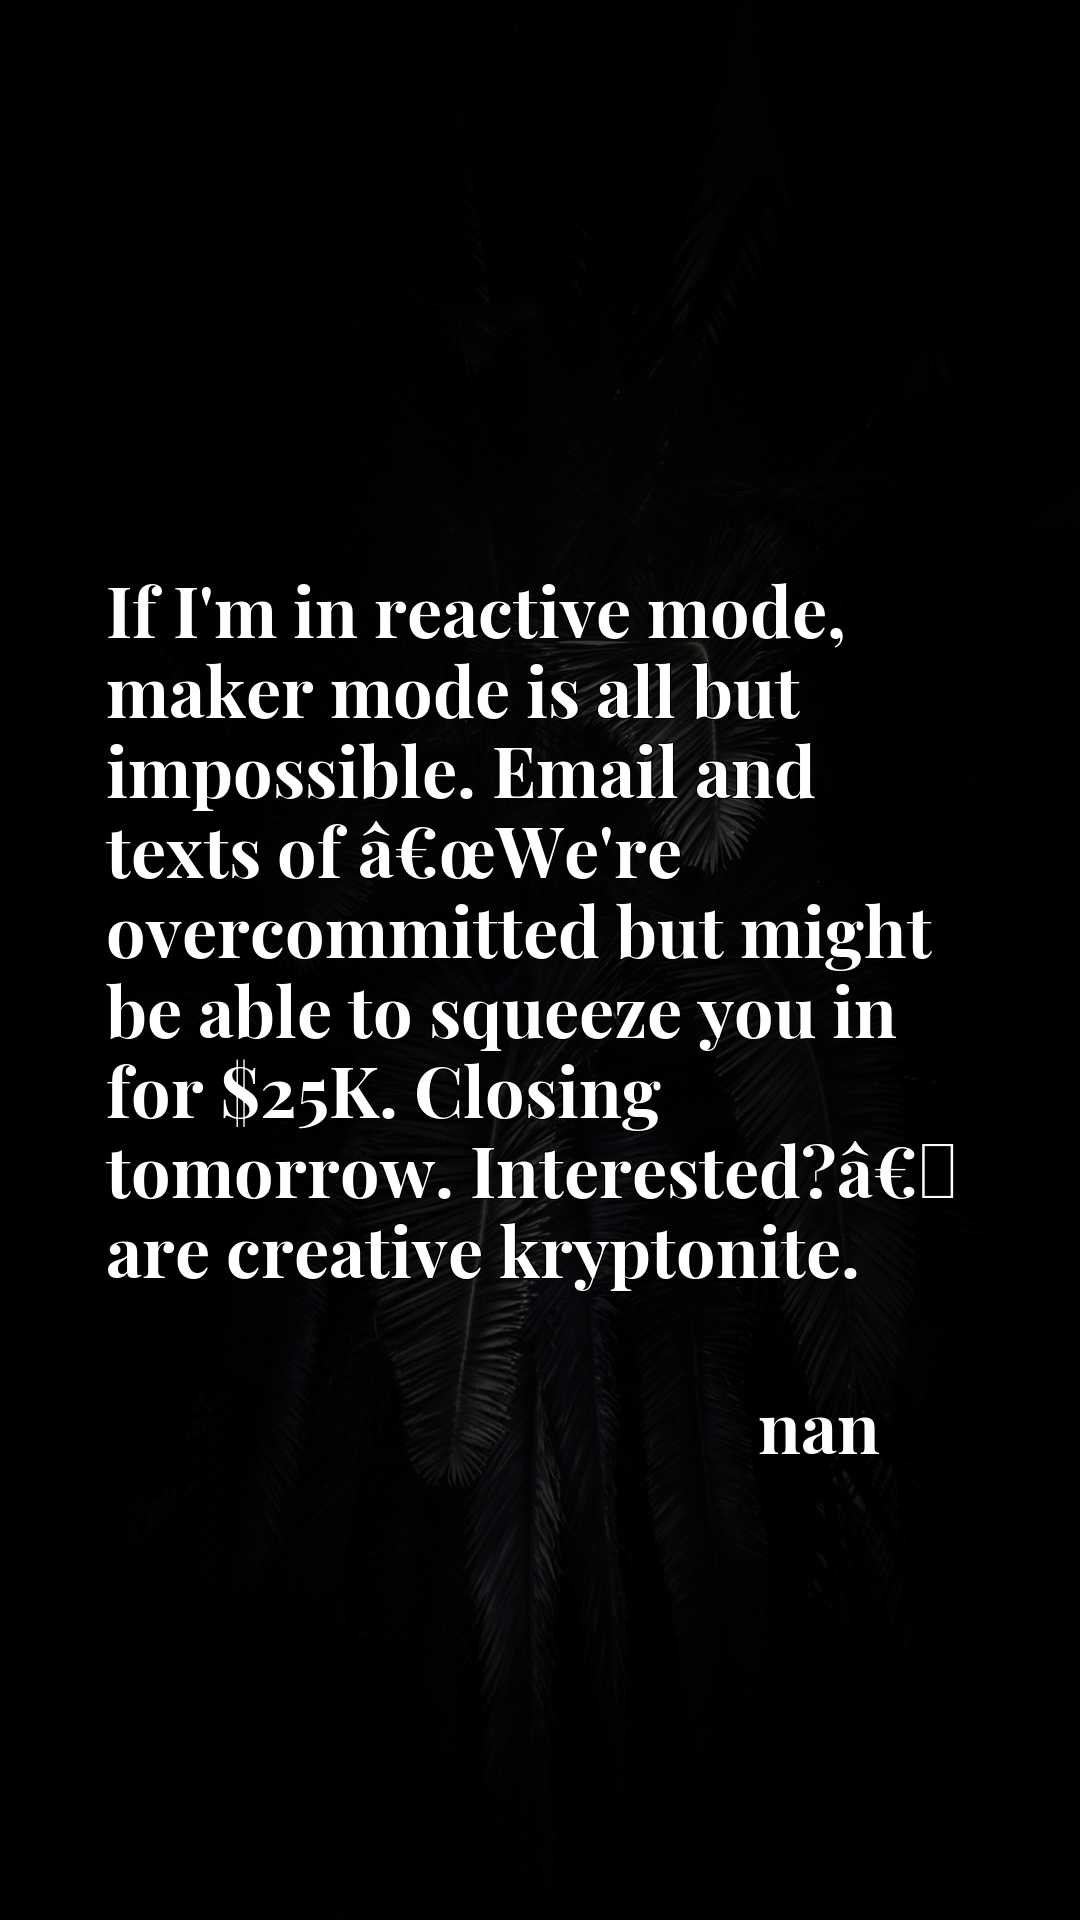 If I'm in reactive mode, maker mode is all but impossible. Email and texts of aEURoeWe're overcommitted but might be able to squeeze you in for $25K. Closing tomorrow. Interested?aEURx9d are creative kryptonite.